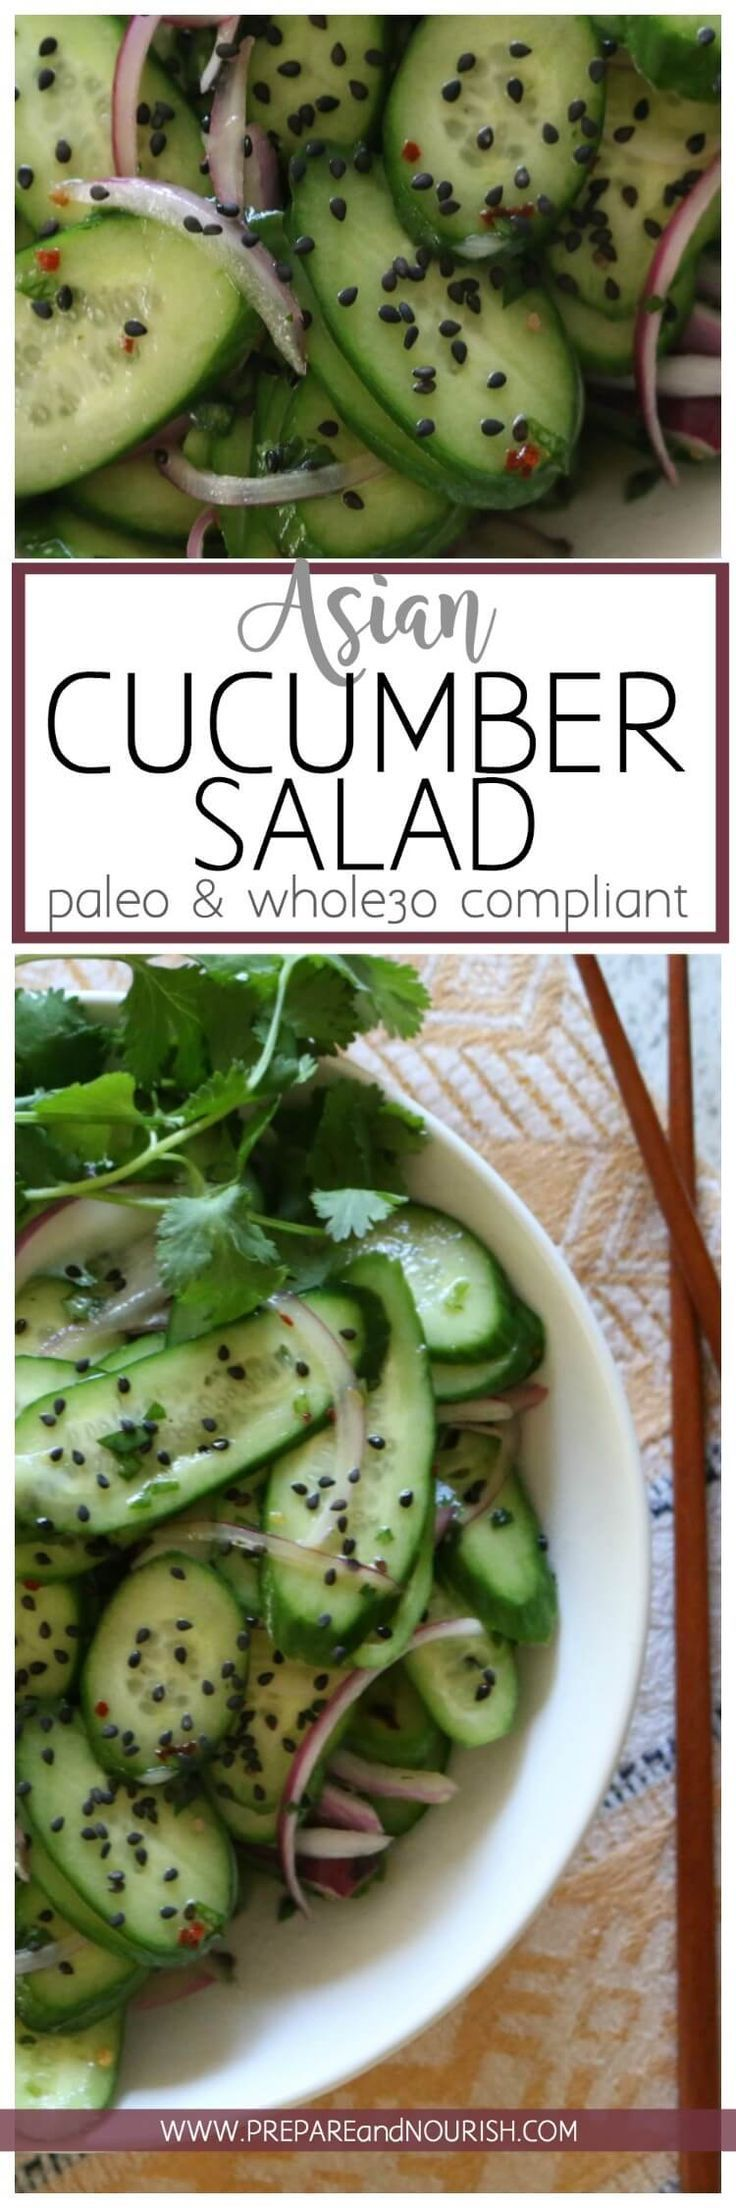 Asian Cucumber Salad - Thinly sliced cucumbers and red onions tossed with a white wine vinaigrette dressing makes a light and refreshing salad. Top with rich black sesame seeds for major flavor action.  Paleo & Whole 30 Compliant.  via @preparenourish